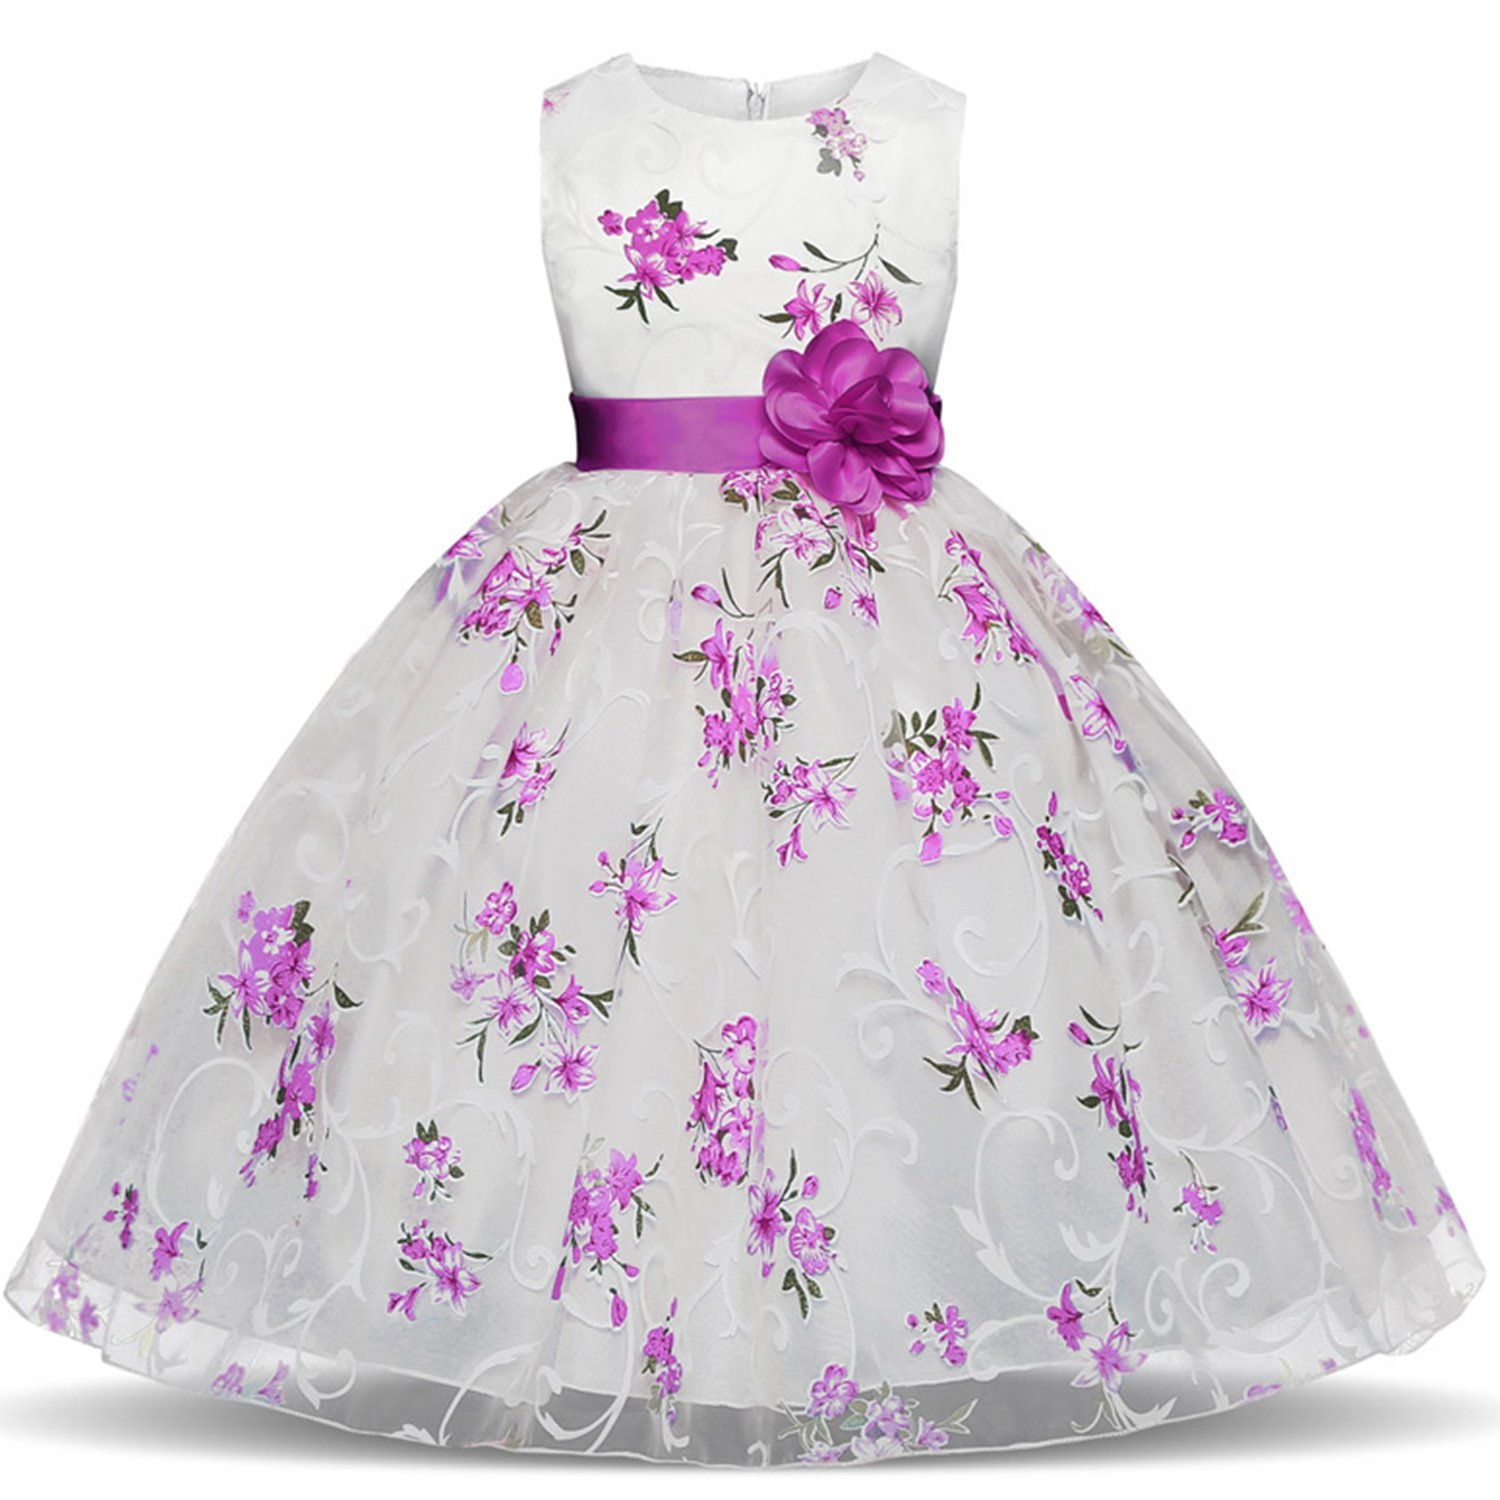 TTYAOVO Girls Flower Printing Chiffon Princess Wedding Party Holiday Dresses Size 6-7 Years Purple